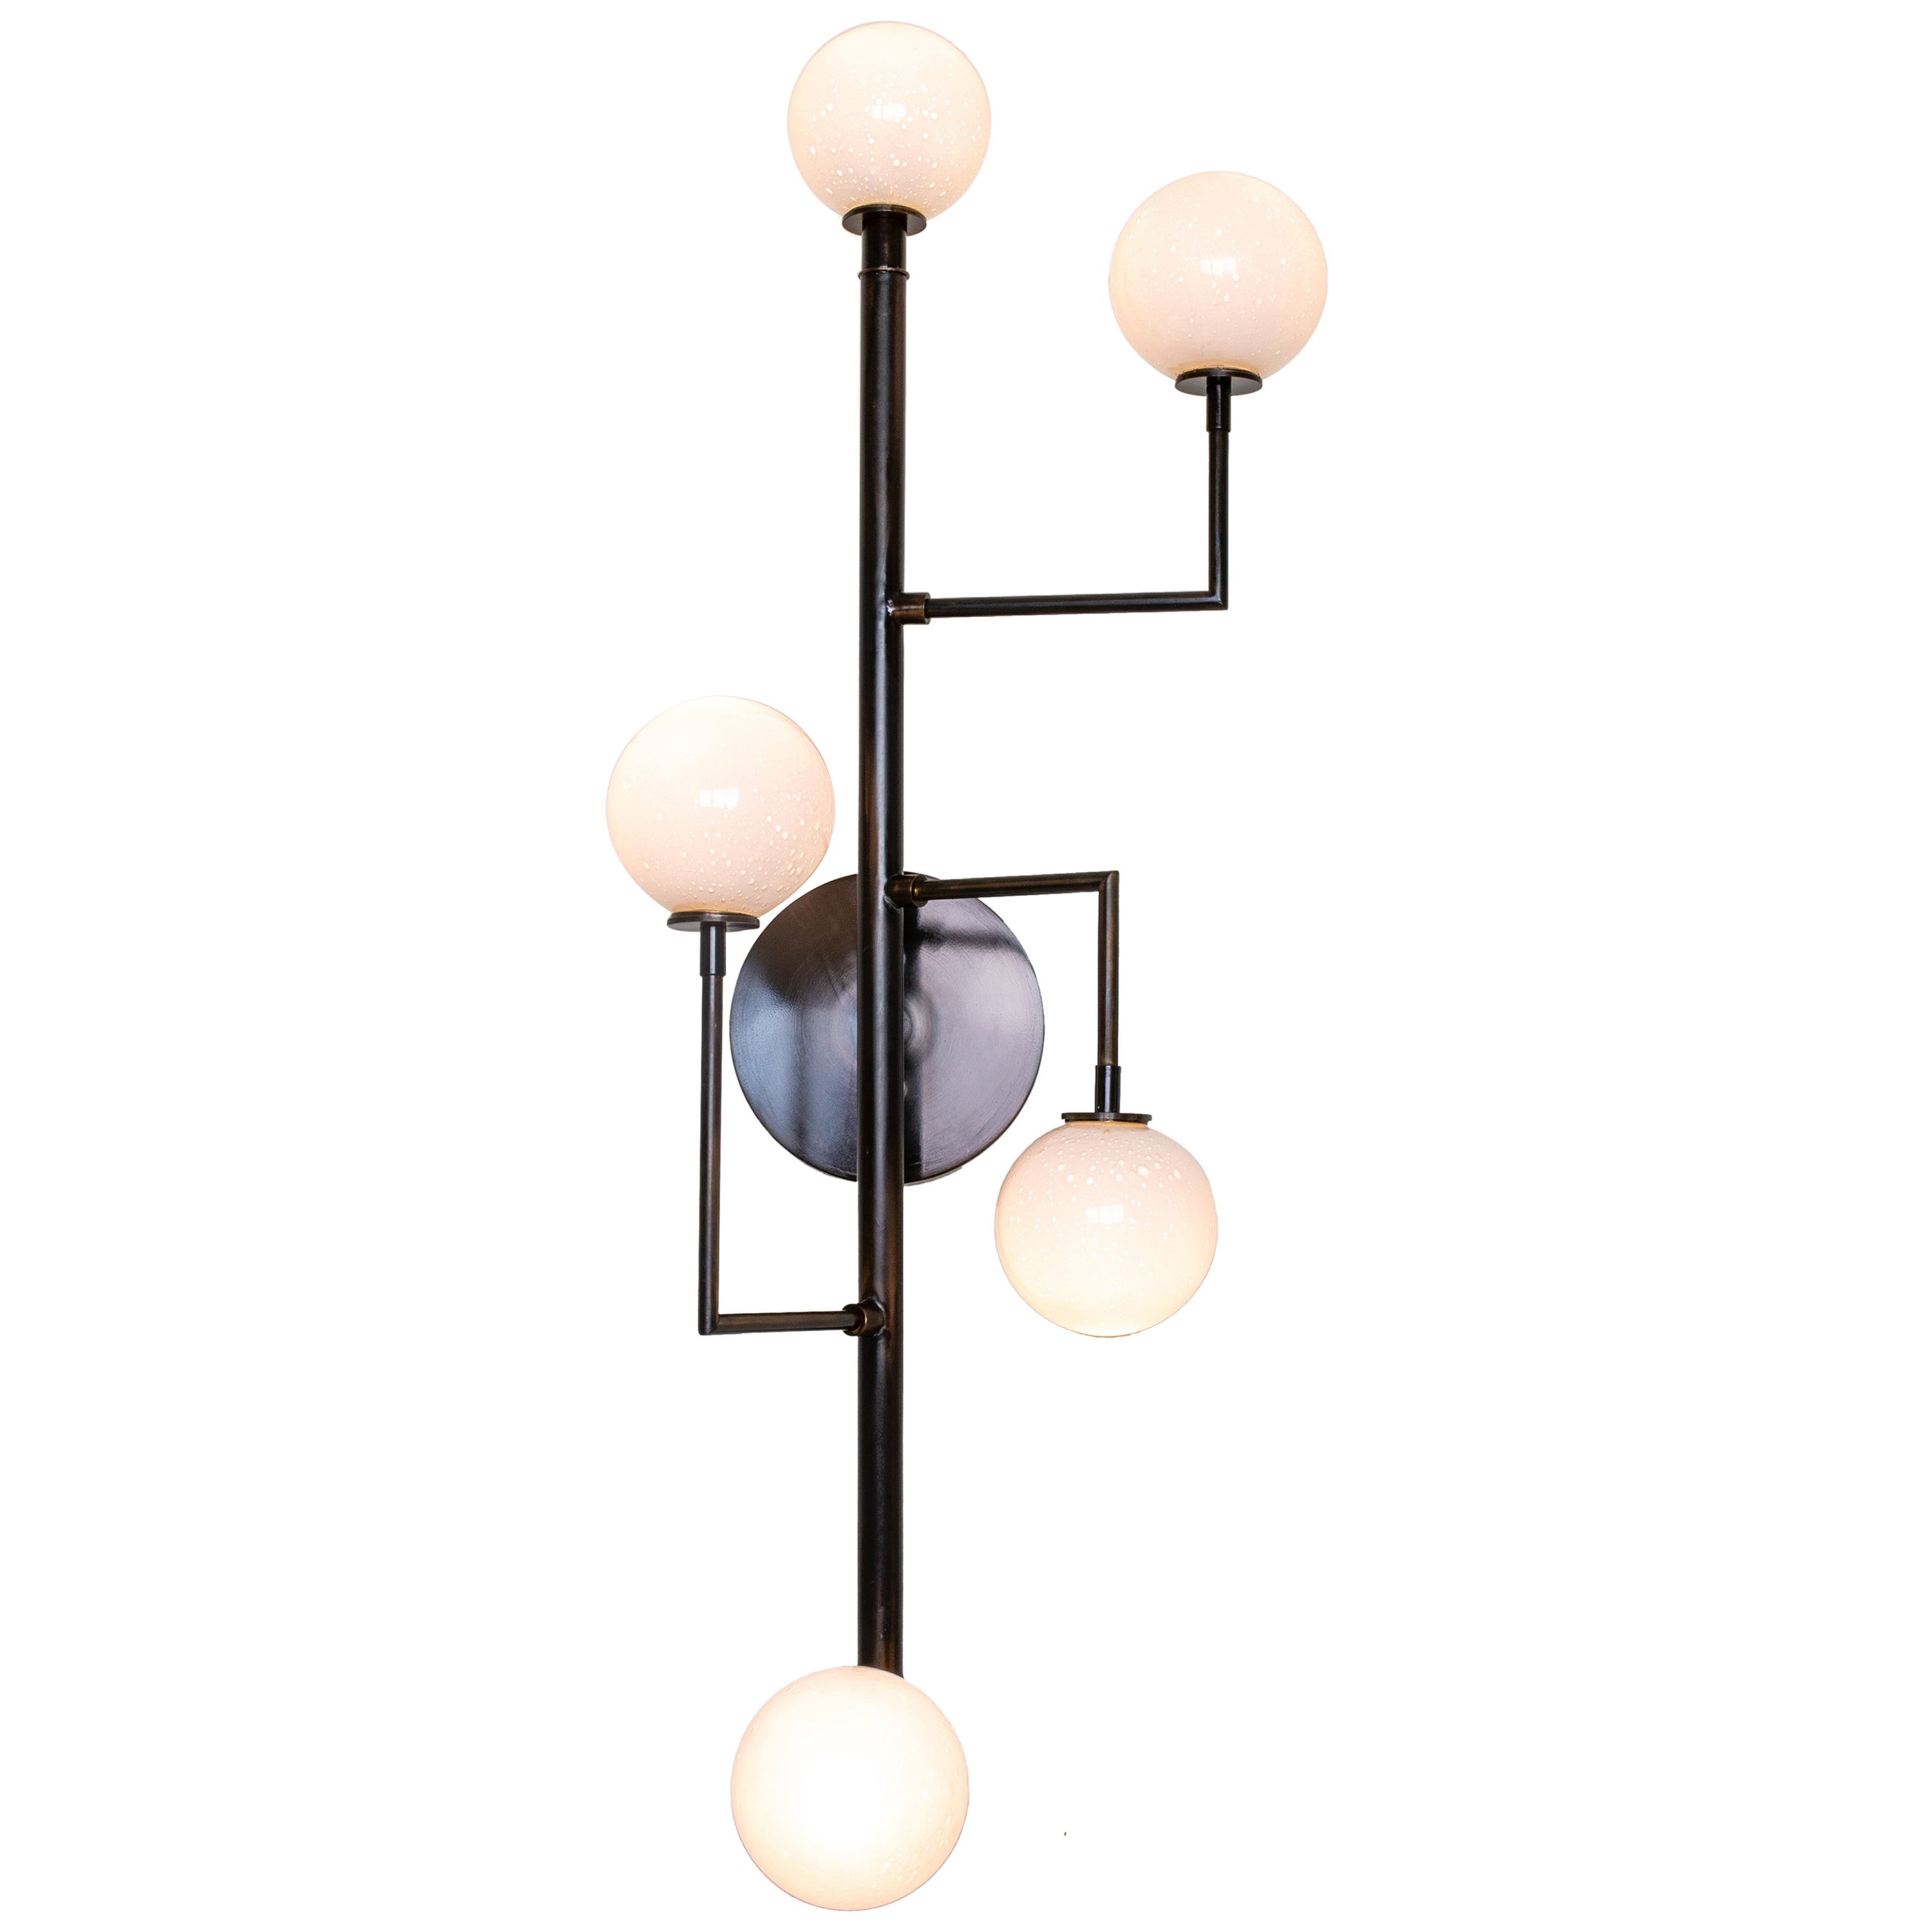 Halo Sconce 5, Brass, Hand Blown Glass Contemporary Wall Sconce, Kalin Asenov